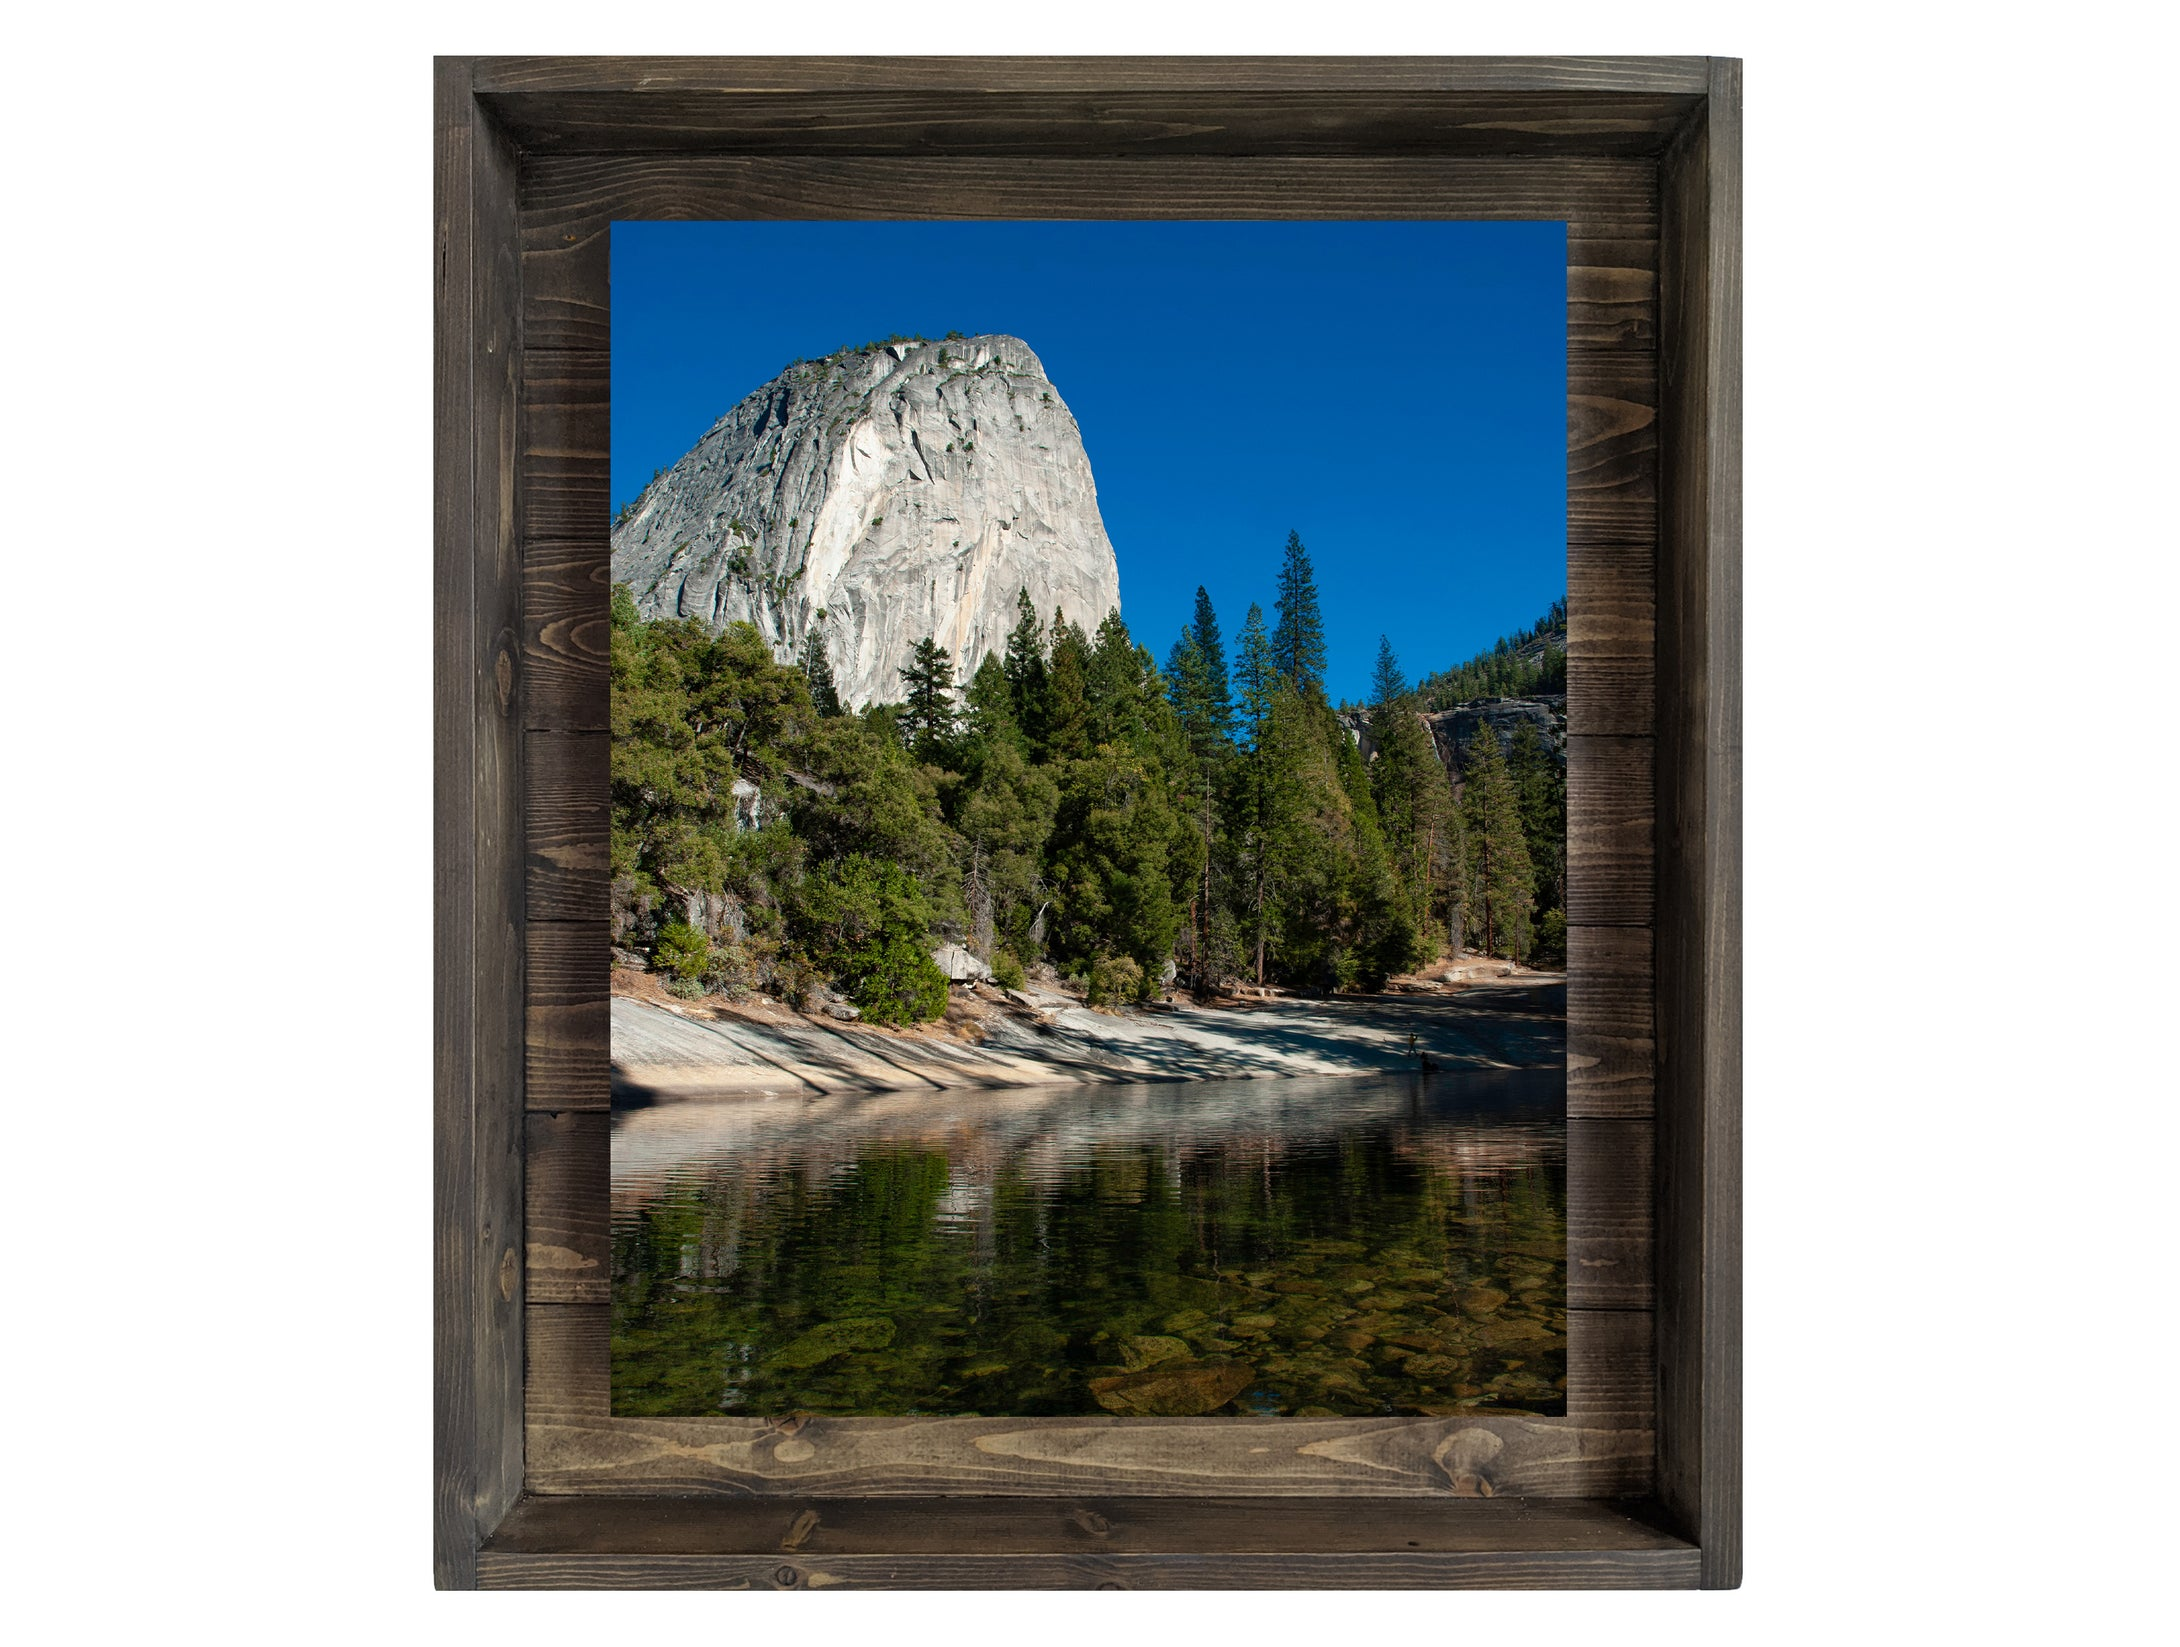 Emerald Pool of Serenity (Modern Rustic Floating Art Print with Hidden Storage for Mail)